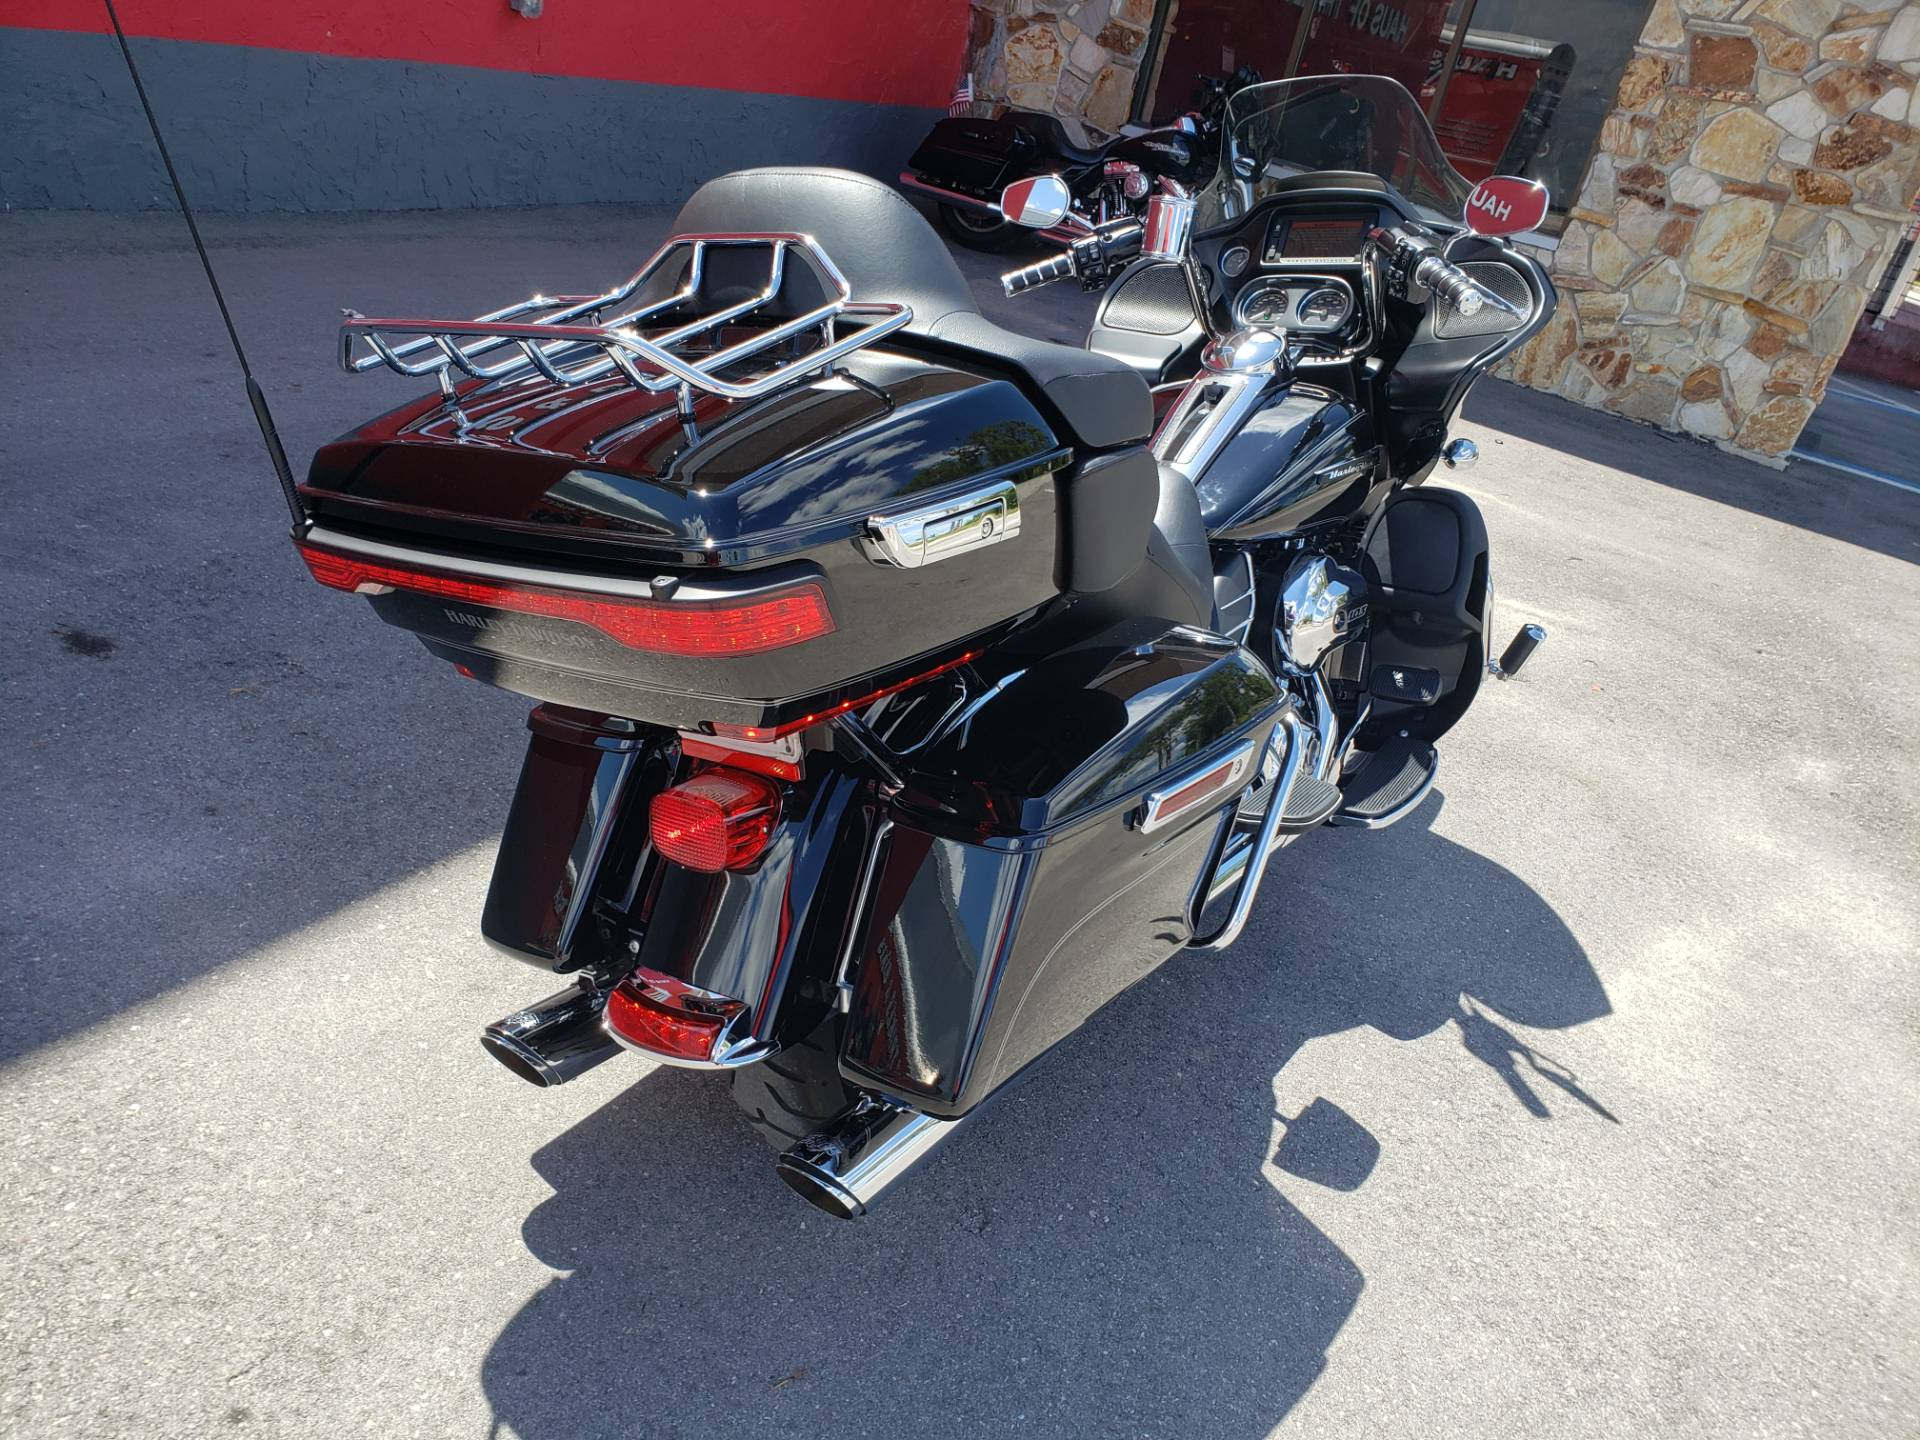 2016 Harley-Davidson Road Glide® Ultra in Fort Myers, Florida - Photo 5